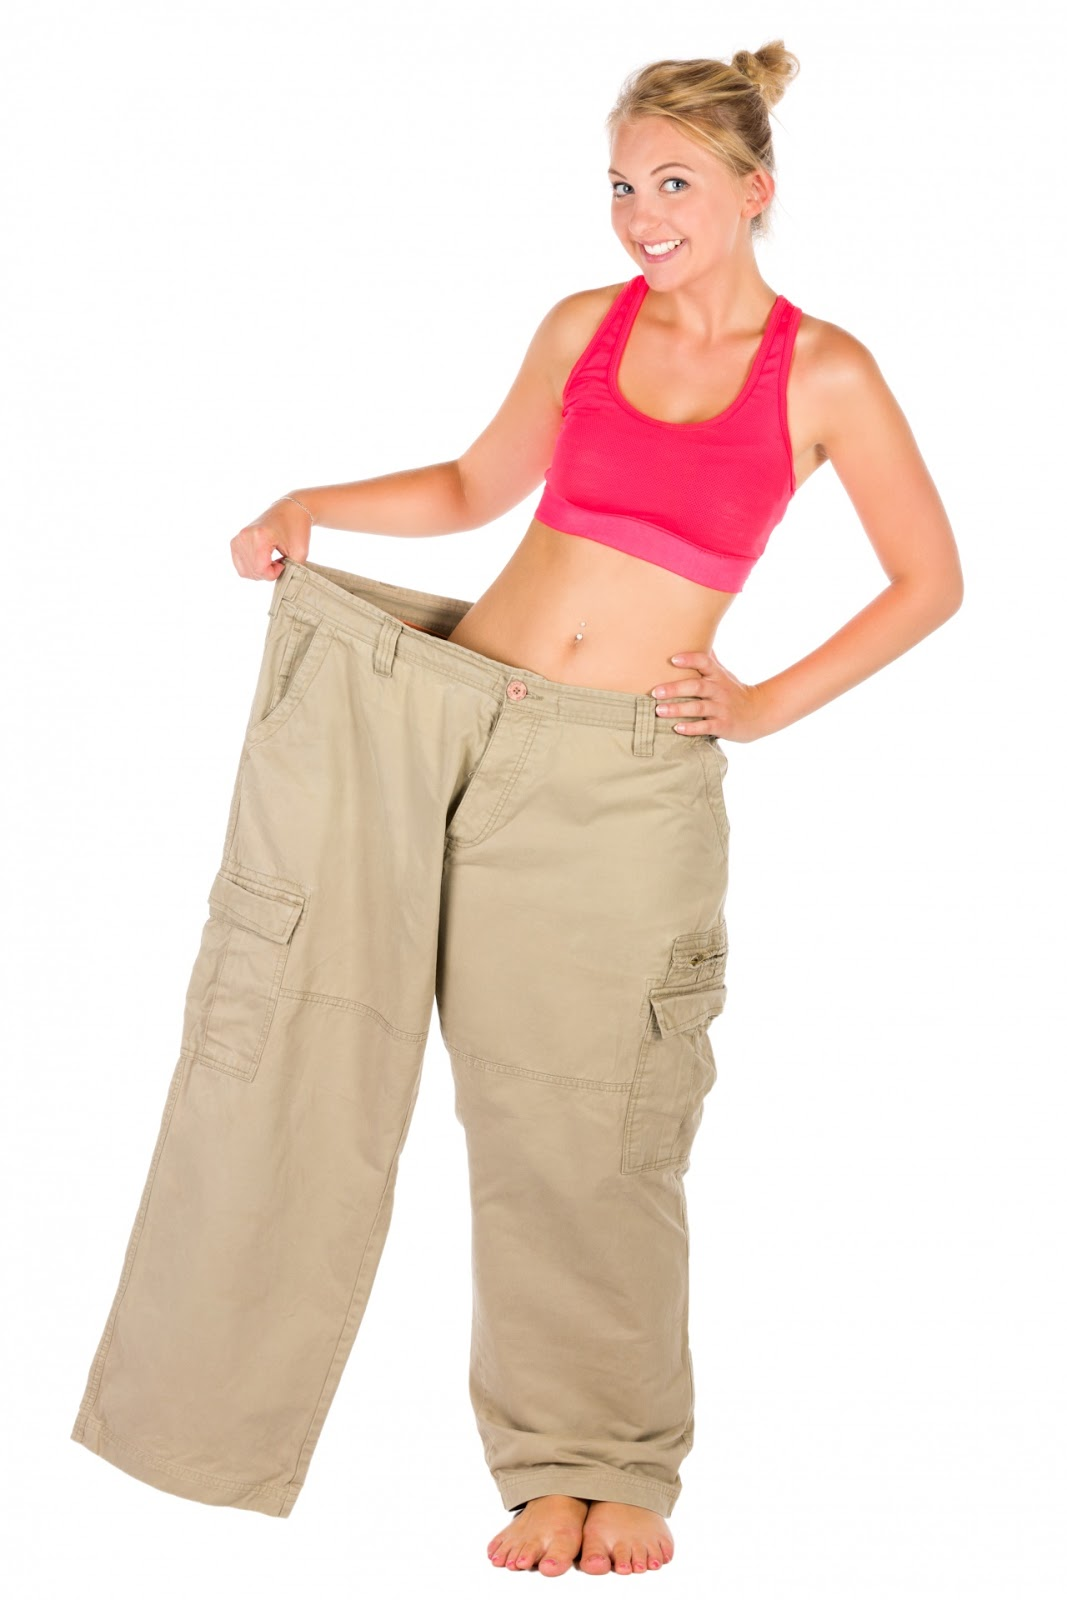 What Is The Most Effective Way To Lose Weight Easily?